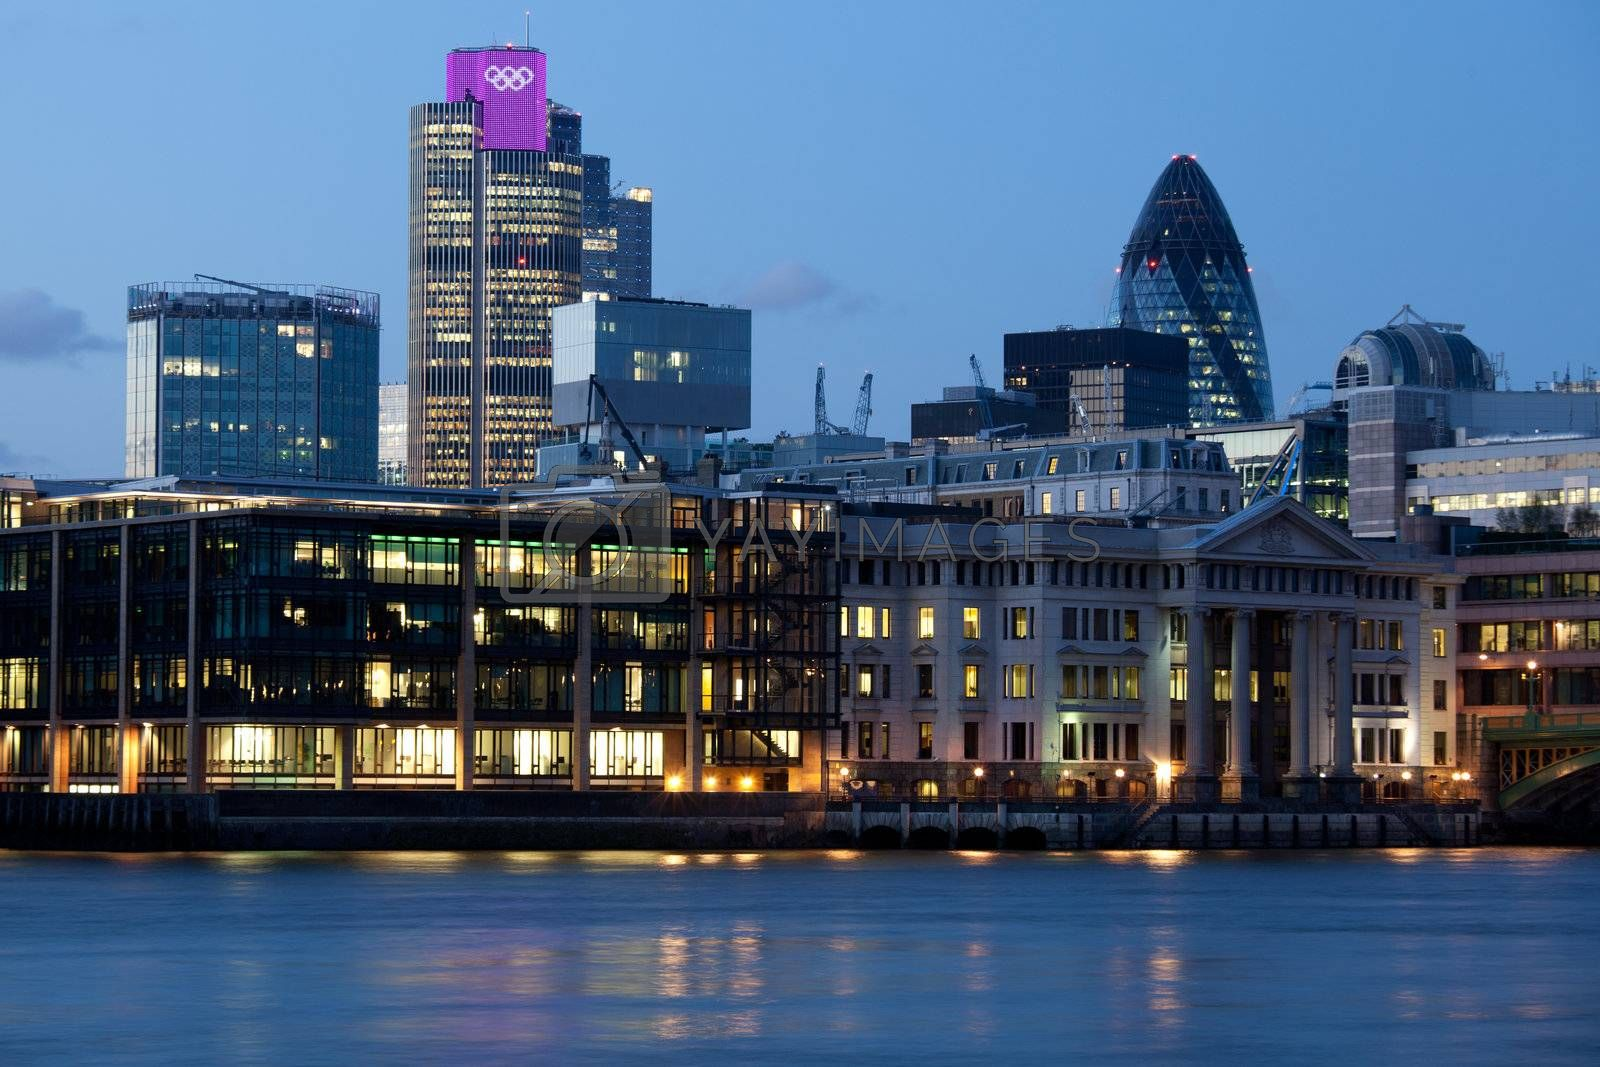 London City, leading center of global finance on Thames river bank. View on Tower 42 Gherkin, illuminated with Olympic rings, Willis Building, Stock Exchange Tower and Lloyd`s of London Great Britain 2012